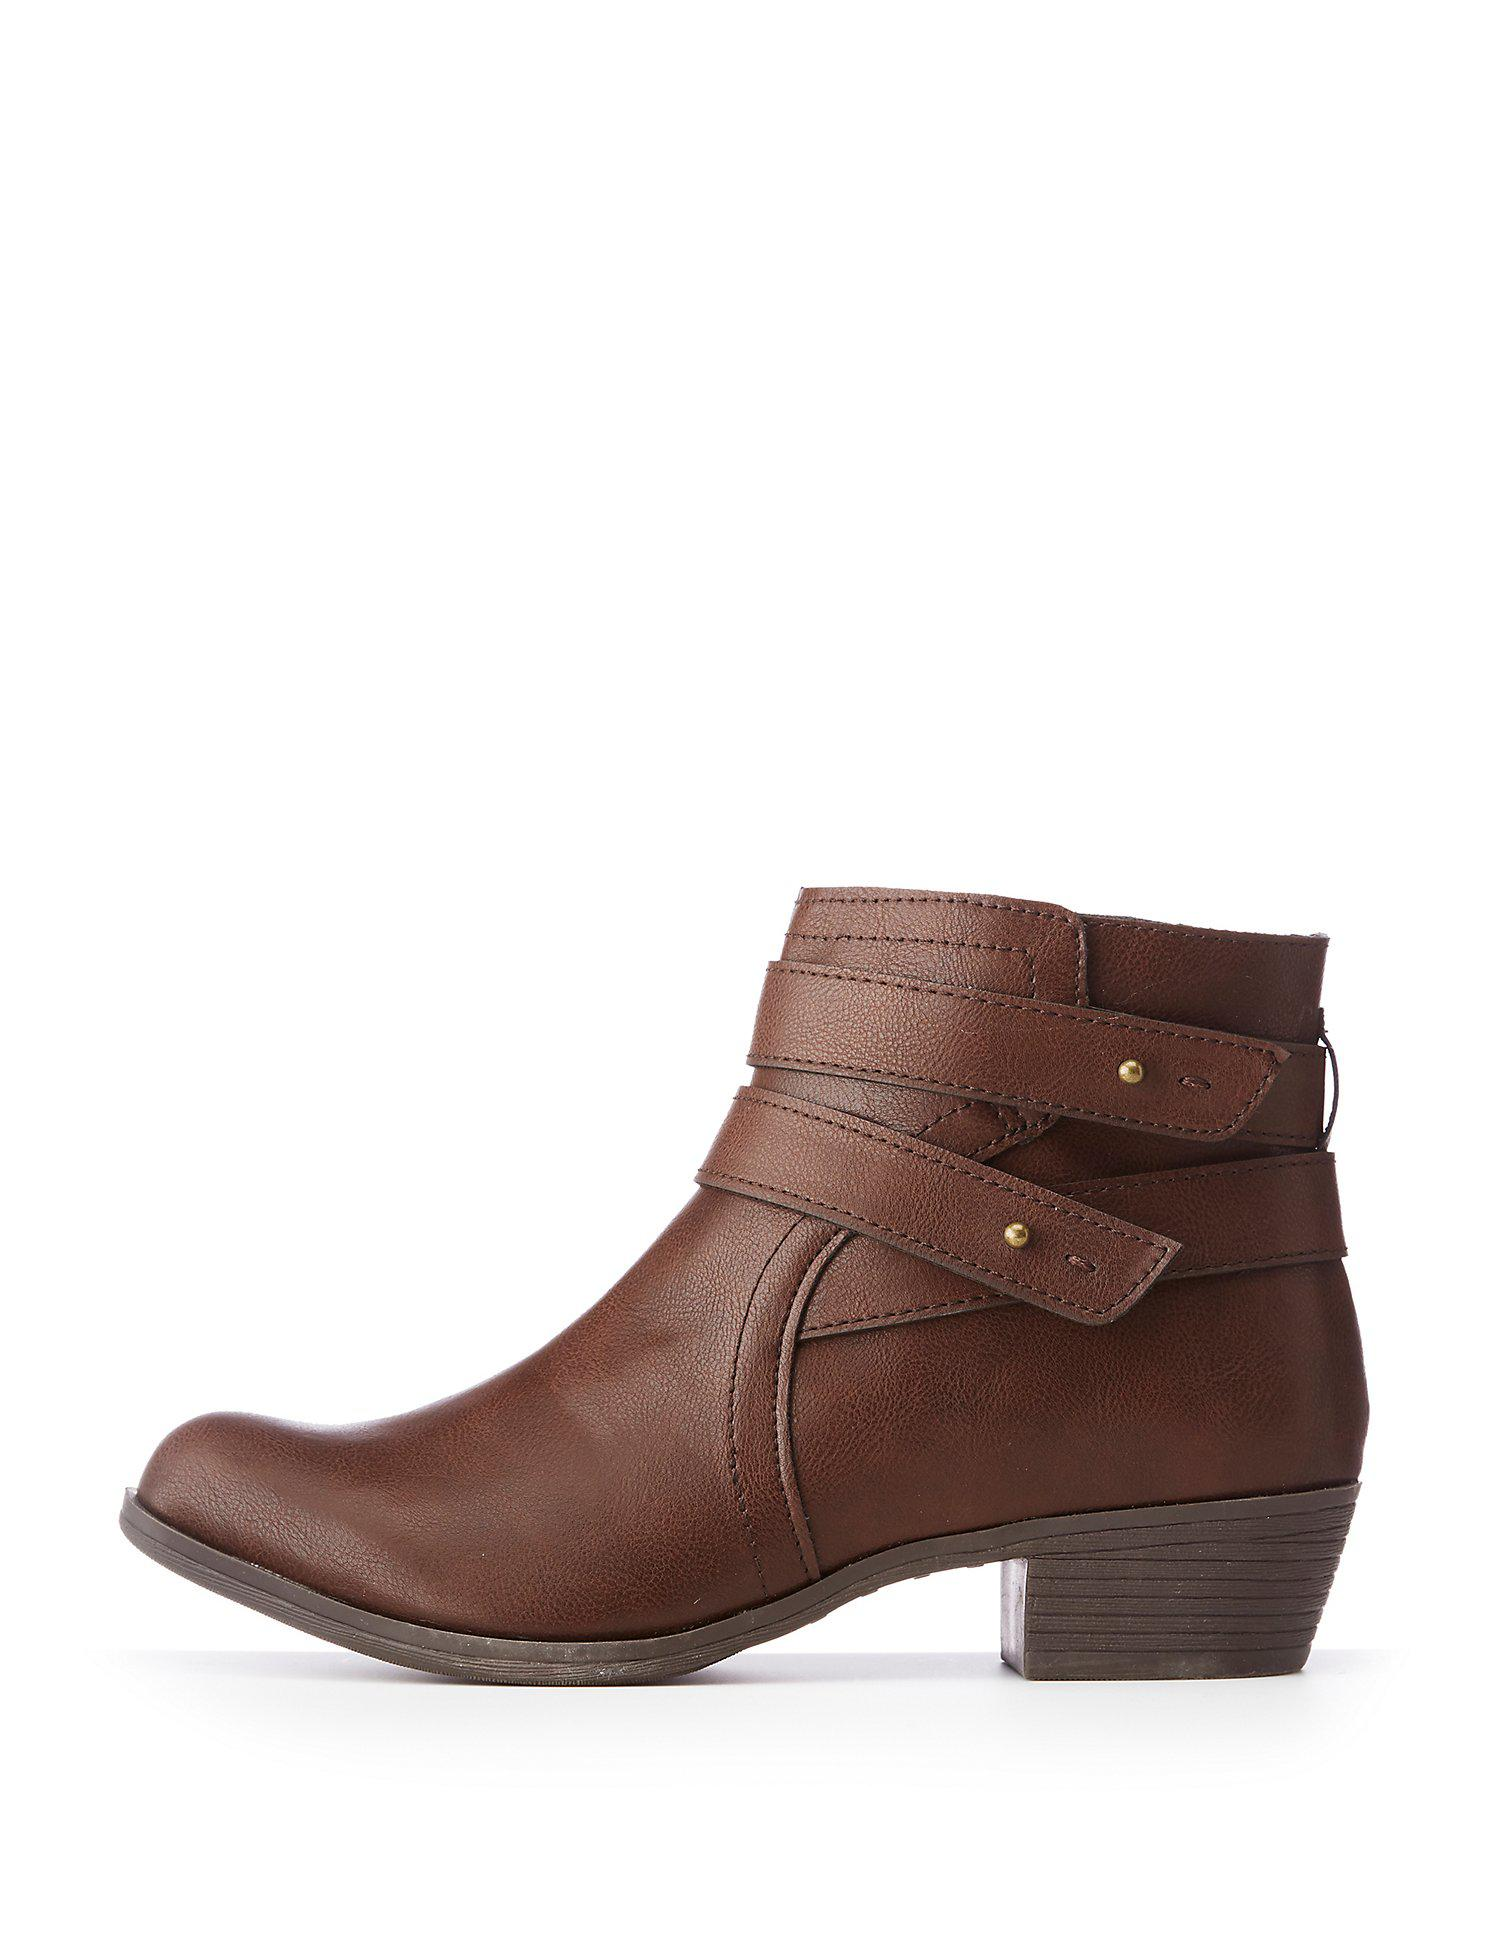 840f3b2afad2 Lyst - Charlotte Russe Bamboo Double Harness Ankle Booties in Brown